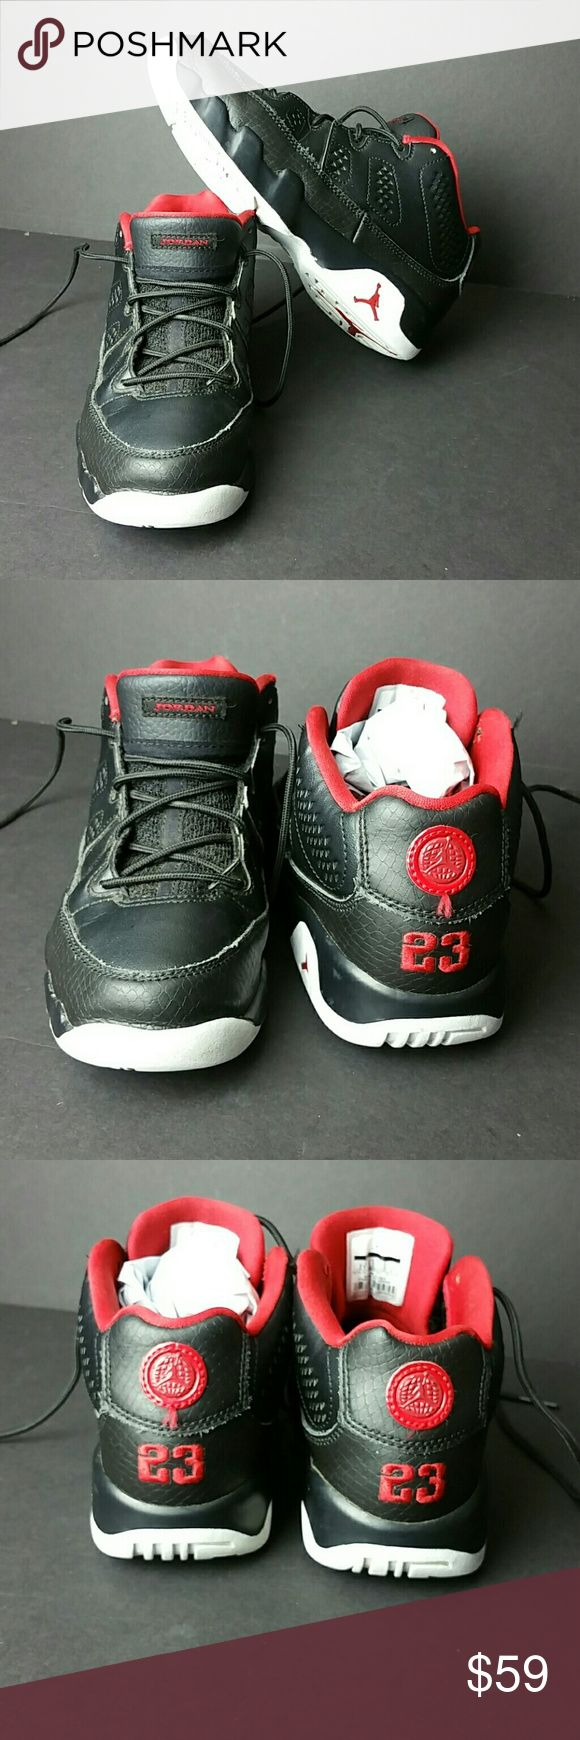 AIR JORDAN 9 RETRO LOW YOUTH SHOES VERY CLEAN INSIDE-OUT   YOUTH SIZE 2Y BIG KIDS   SKE # LT Air Jordan Shoes Sneakers